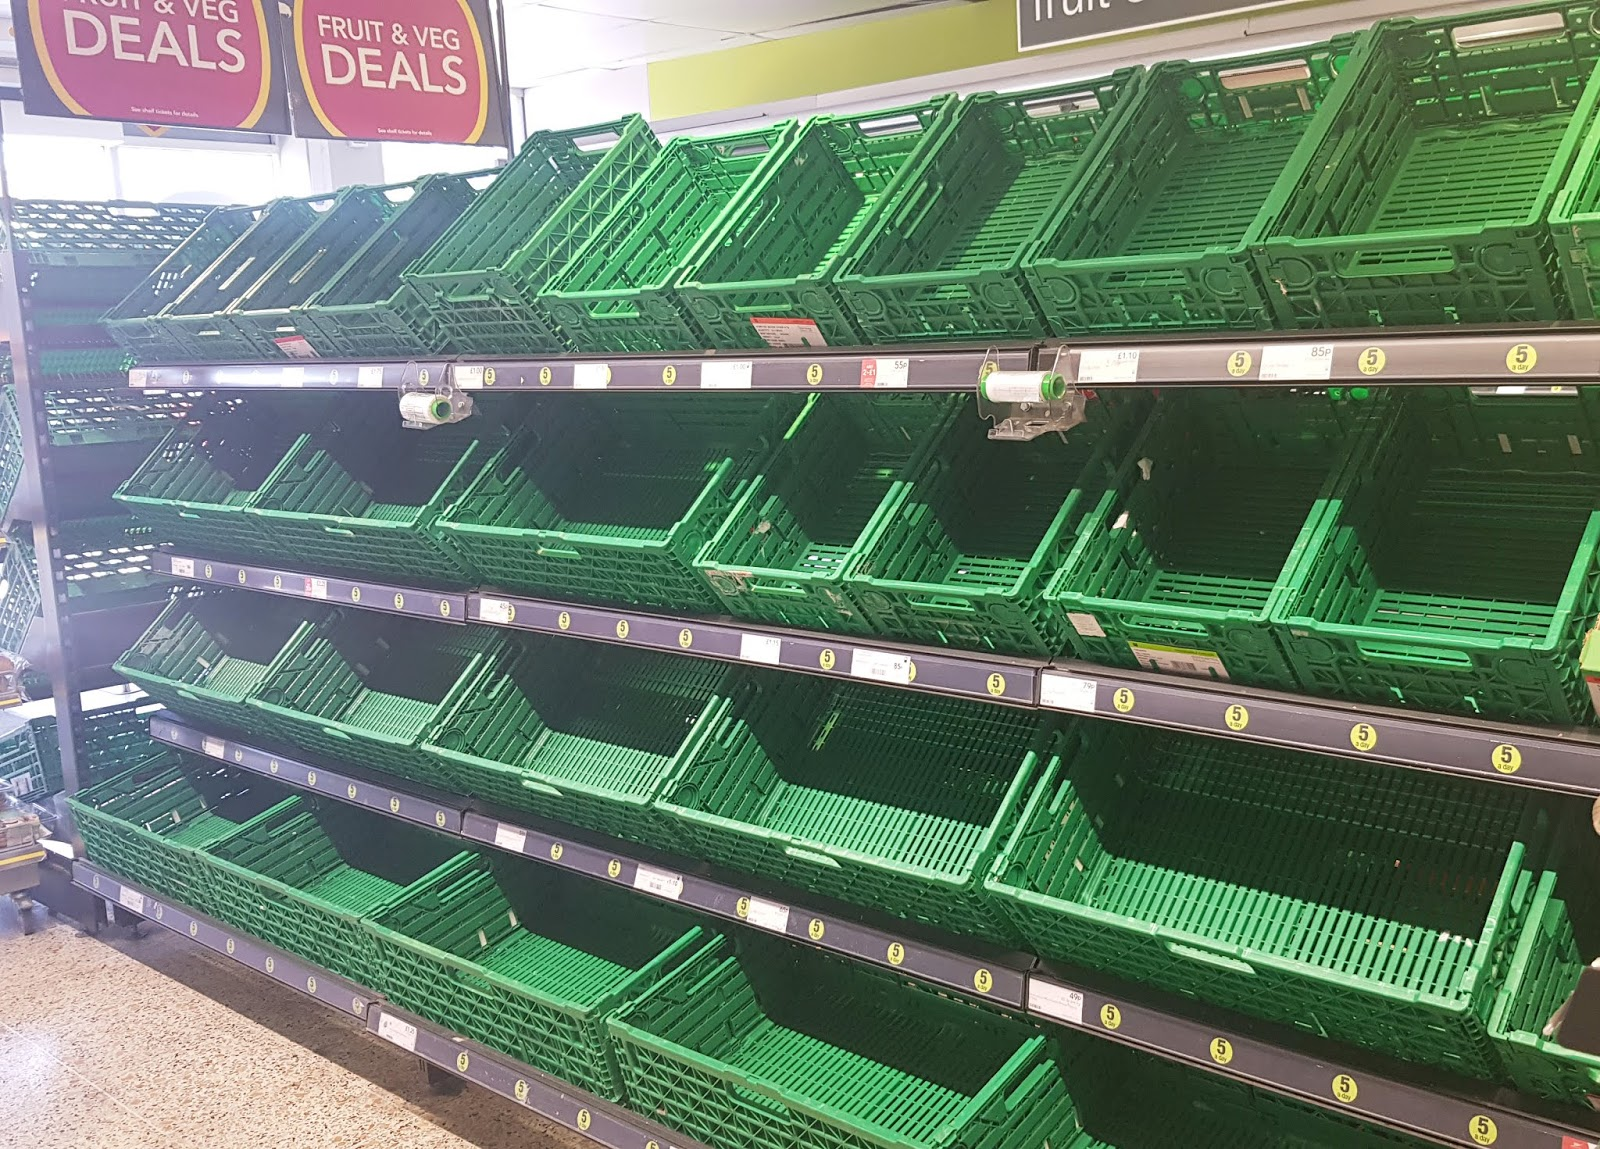 Bare shelves in the Co-Op after stockpilers strip them bare. London, March 2020